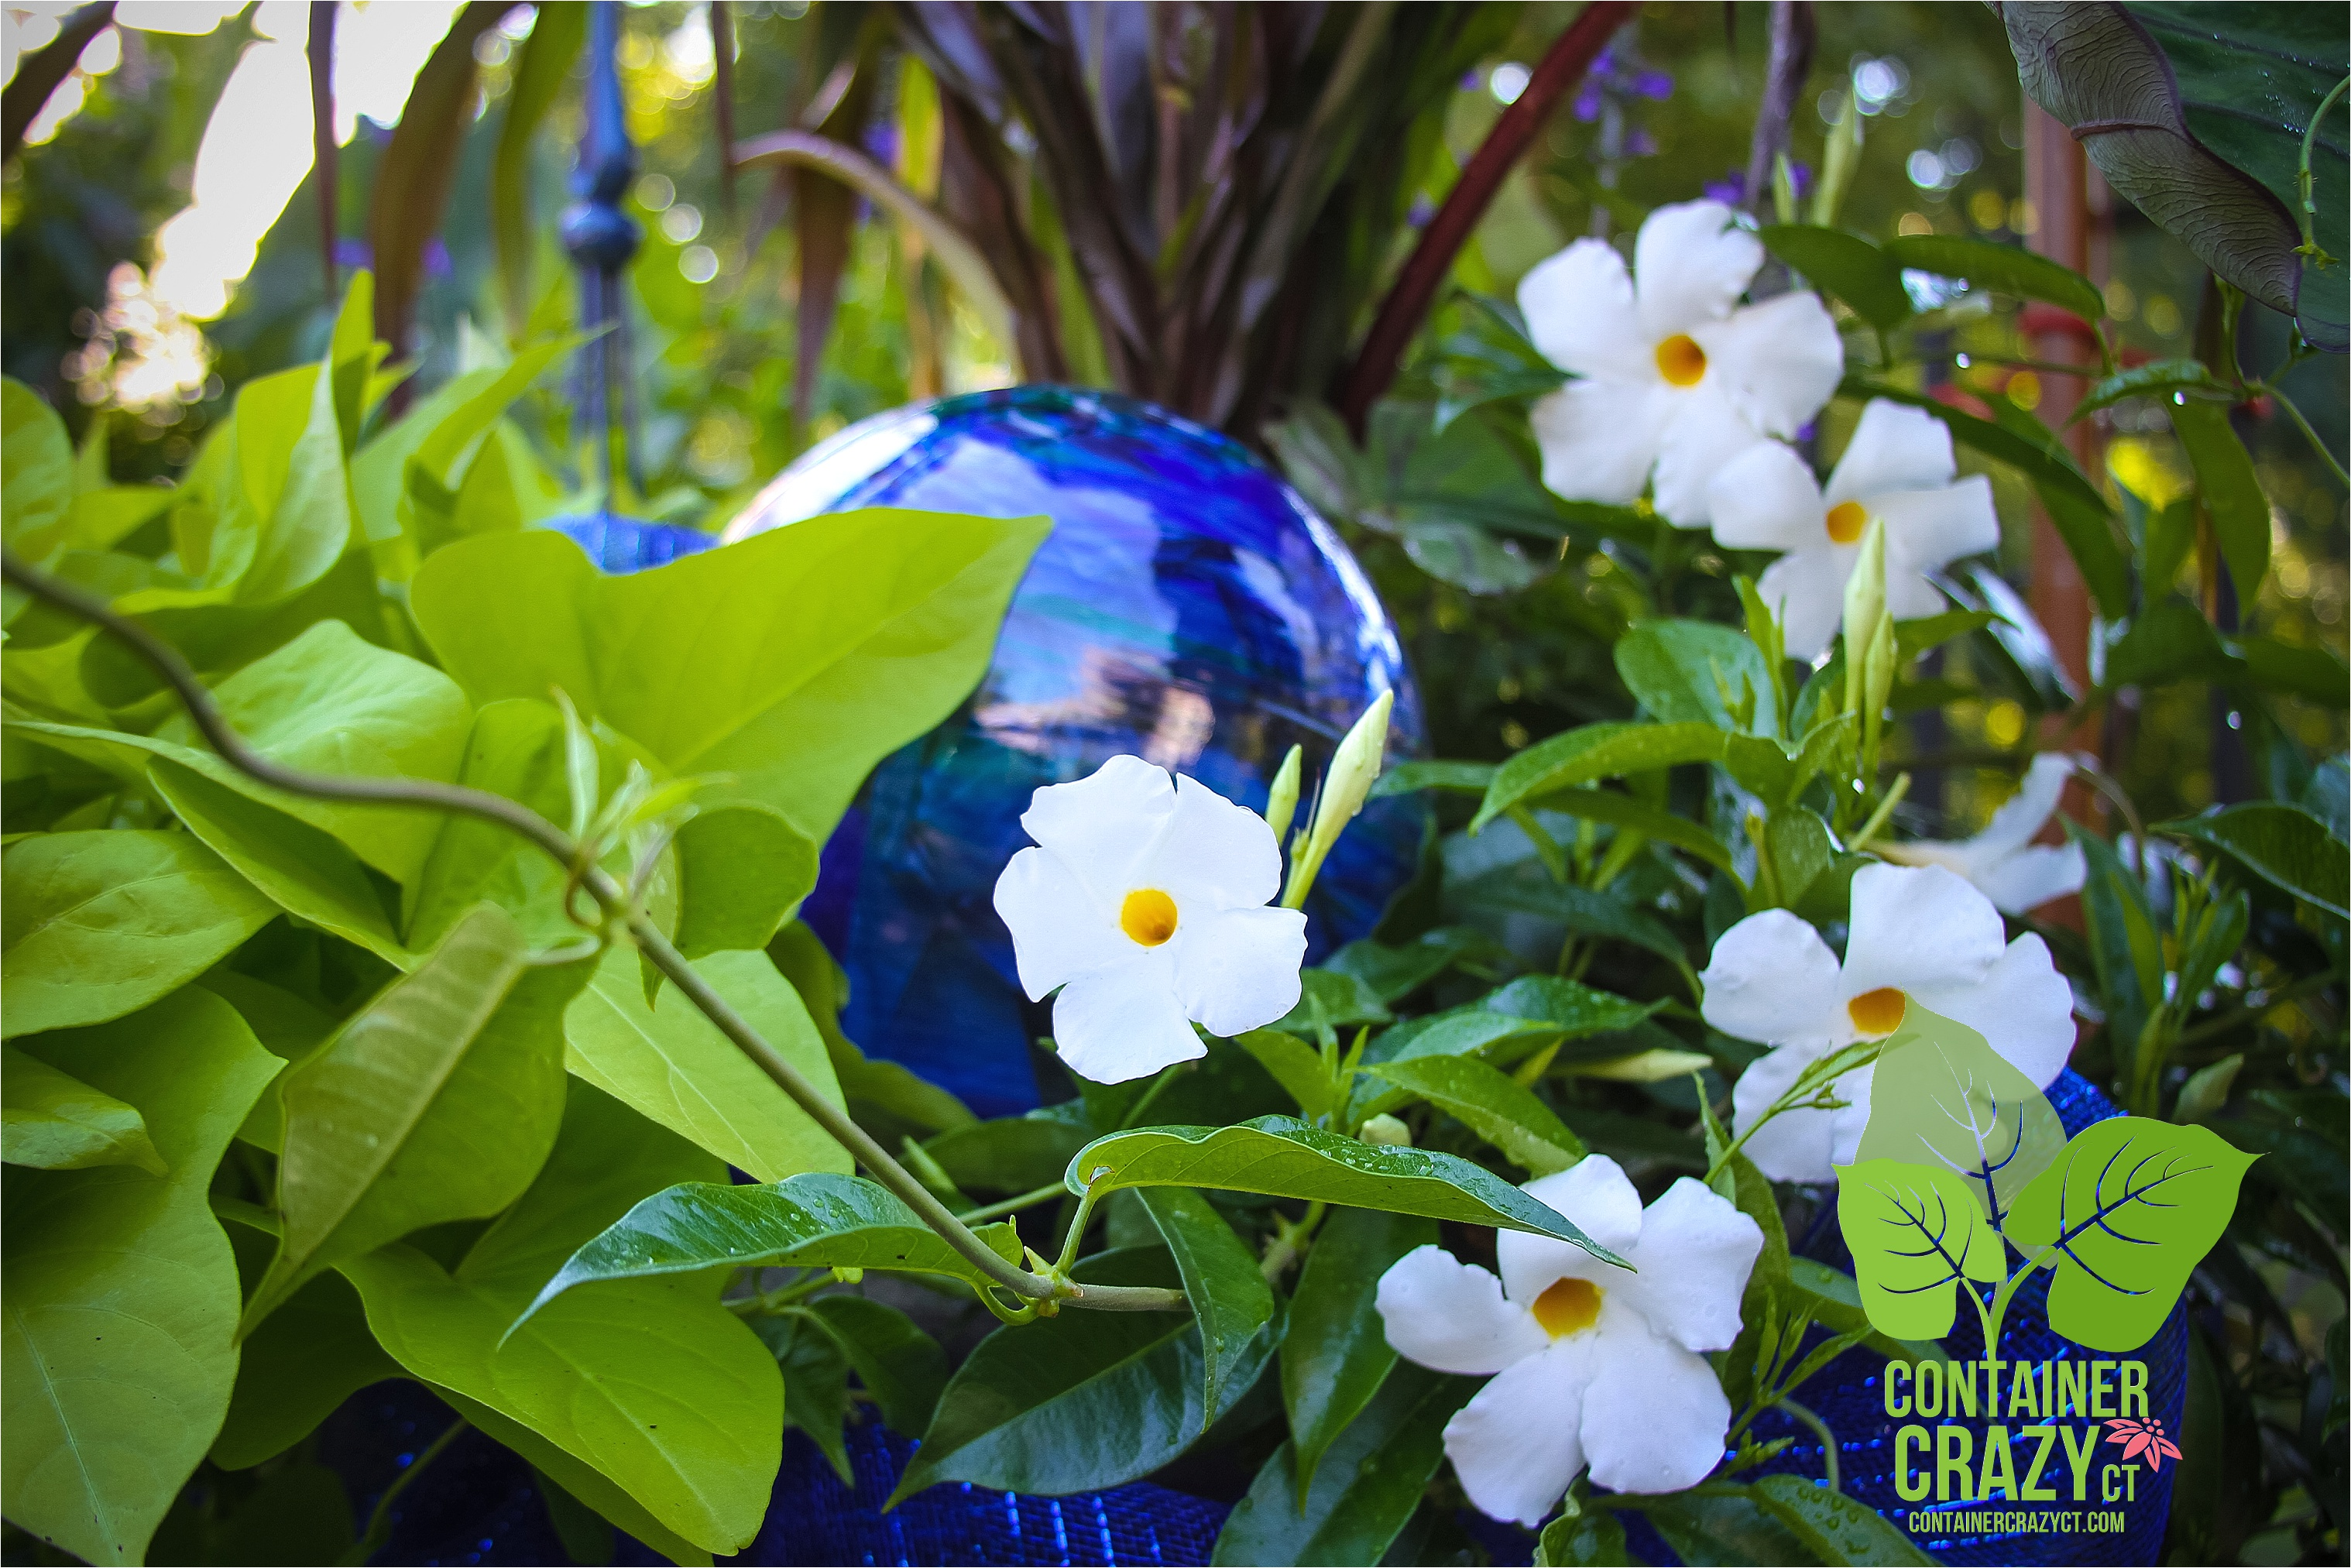 Sweet potato vine marguerite container crazy ct sweet potato vine next to white mandevilla vine and blue gazing ball izmirmasajfo Images